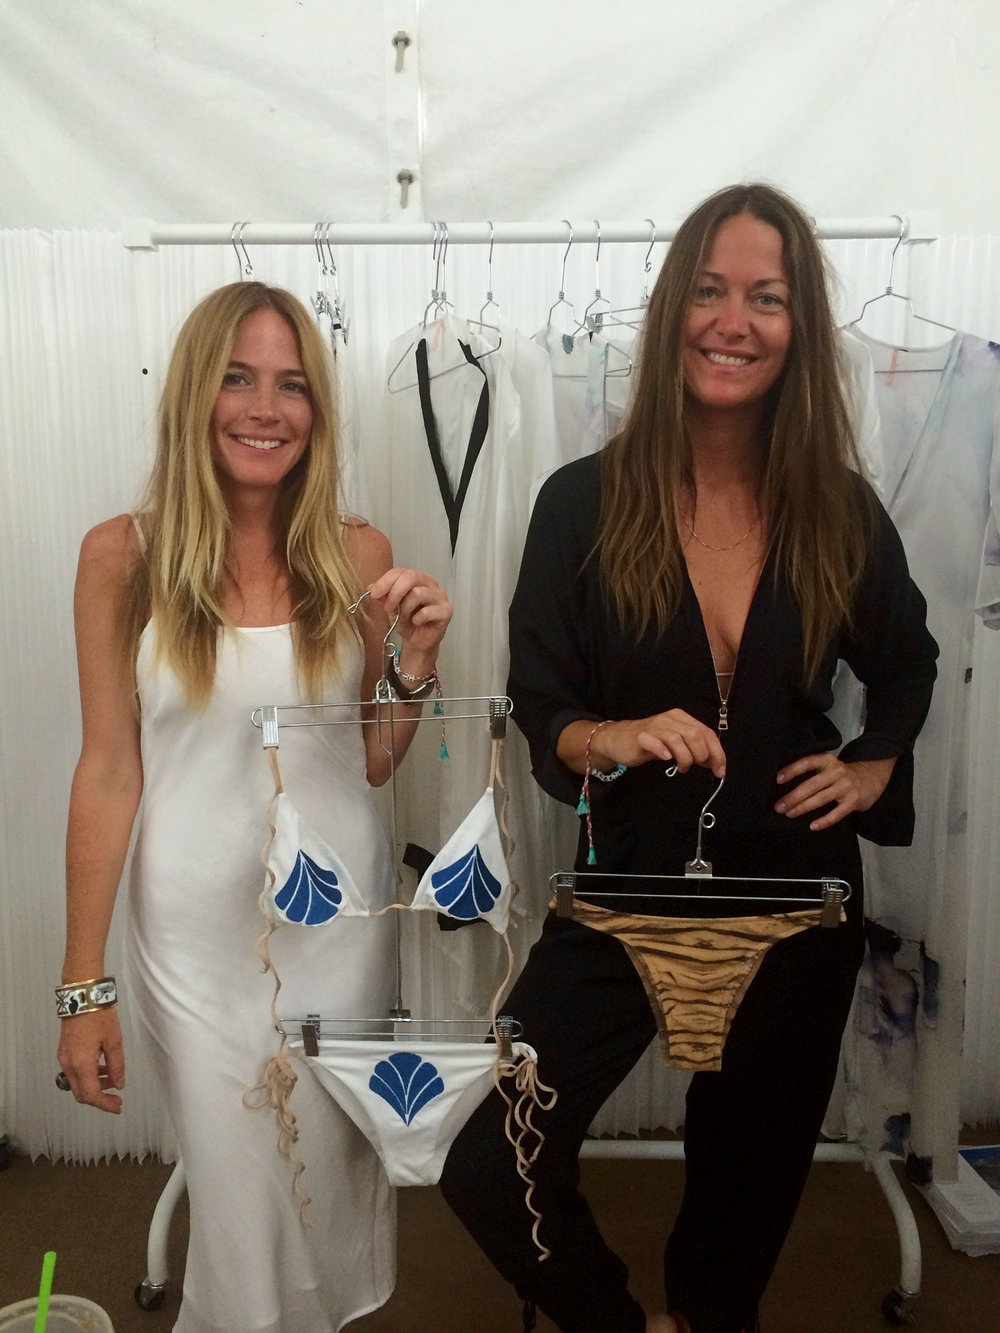 Carrie Jardine & Lisa Priolo of Cali Dreaming Swimwear